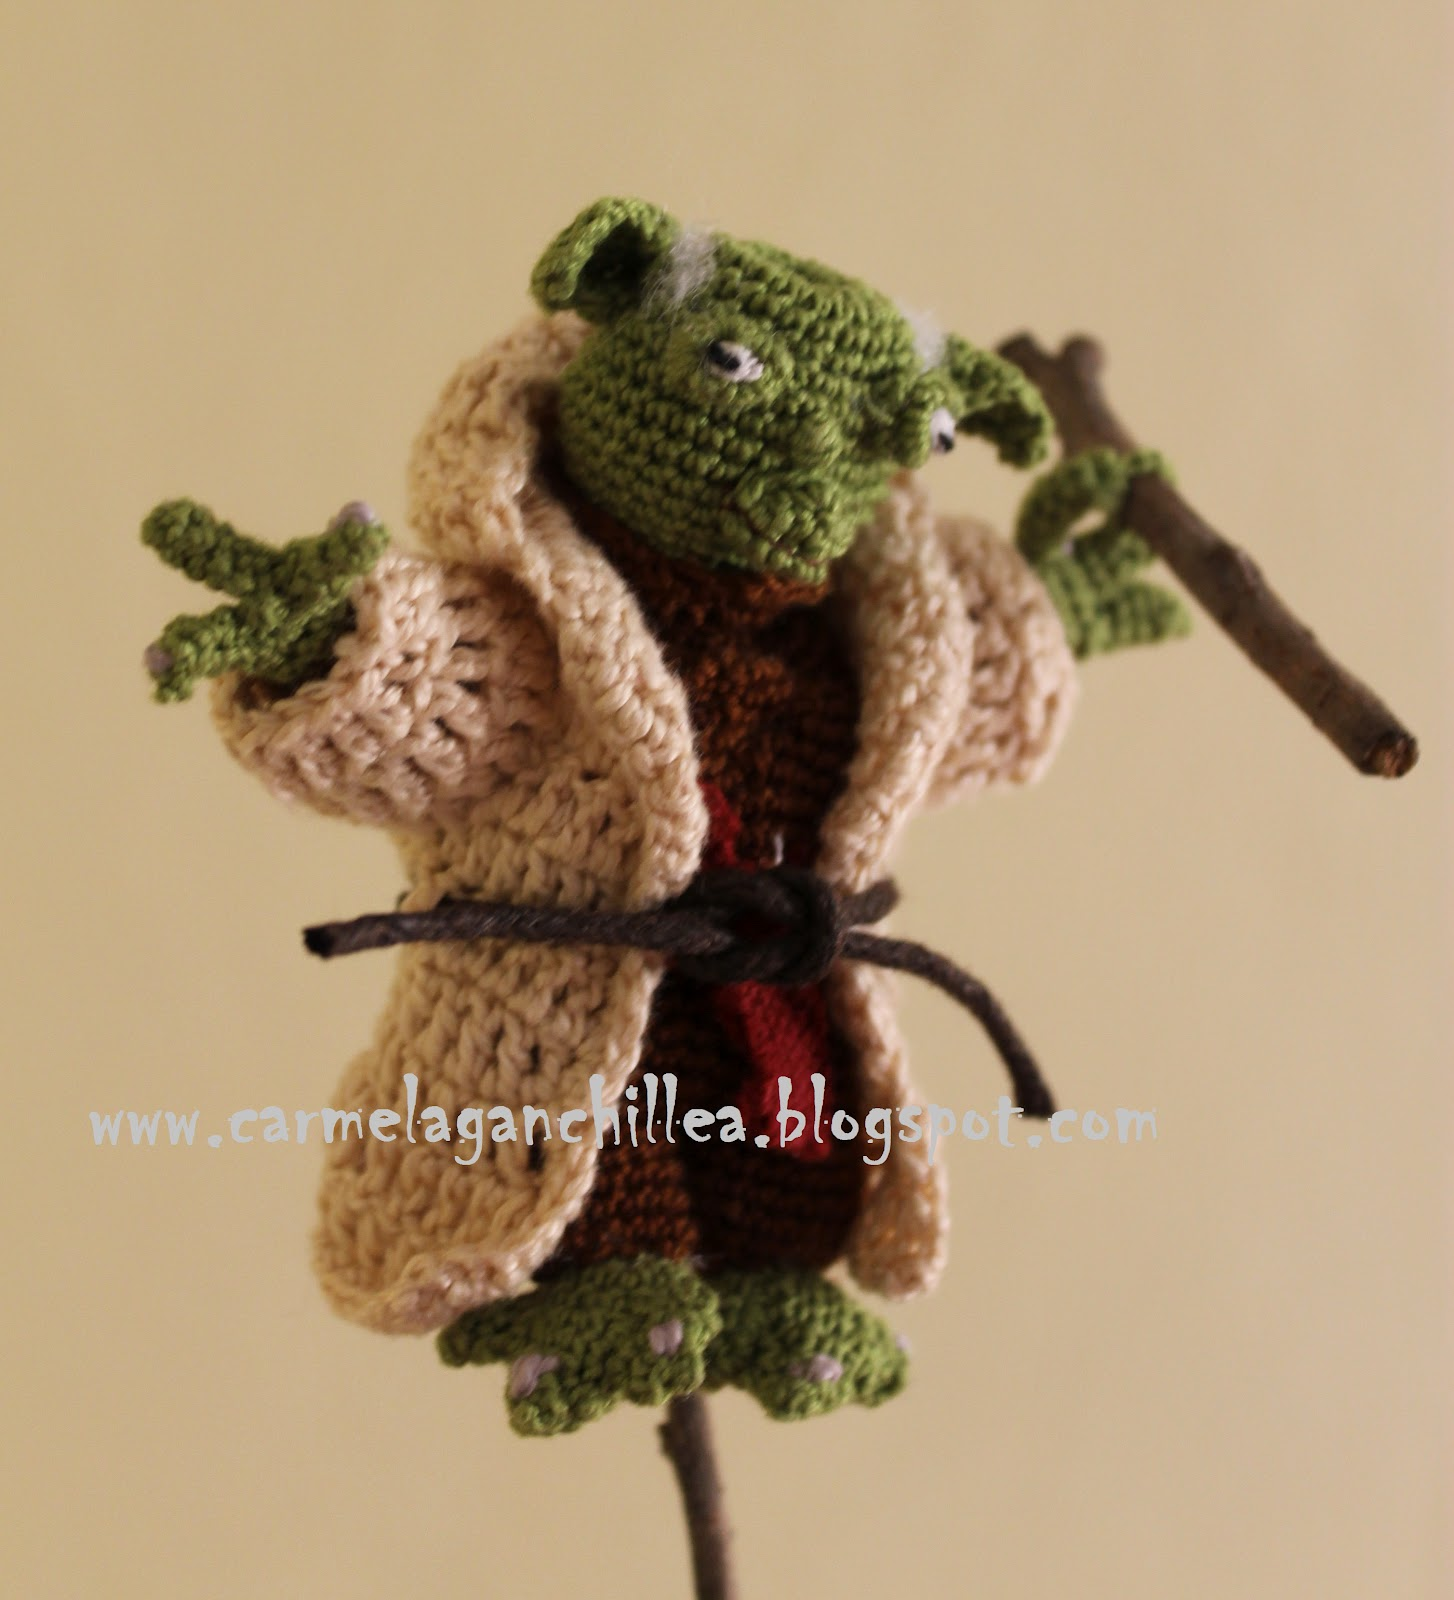 Free Amigurumi Snowman Crochet Patterns : Carmela Ganchillea: Amigurumi Yoda (Star Wars)